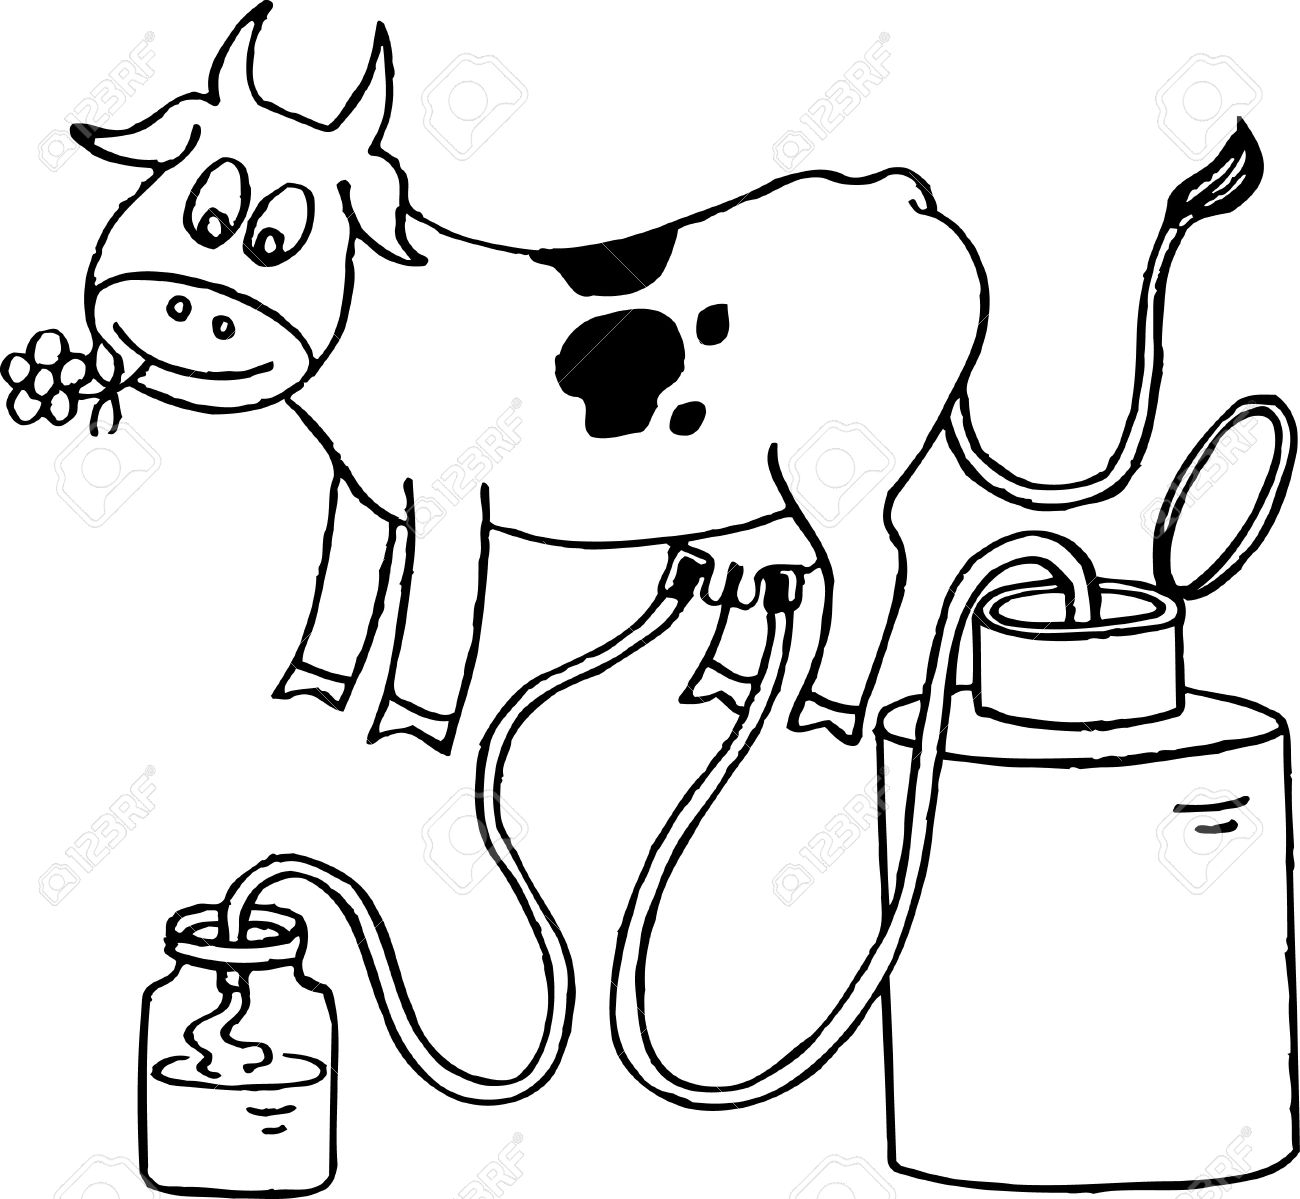 Cow Giving Milk Clipart.